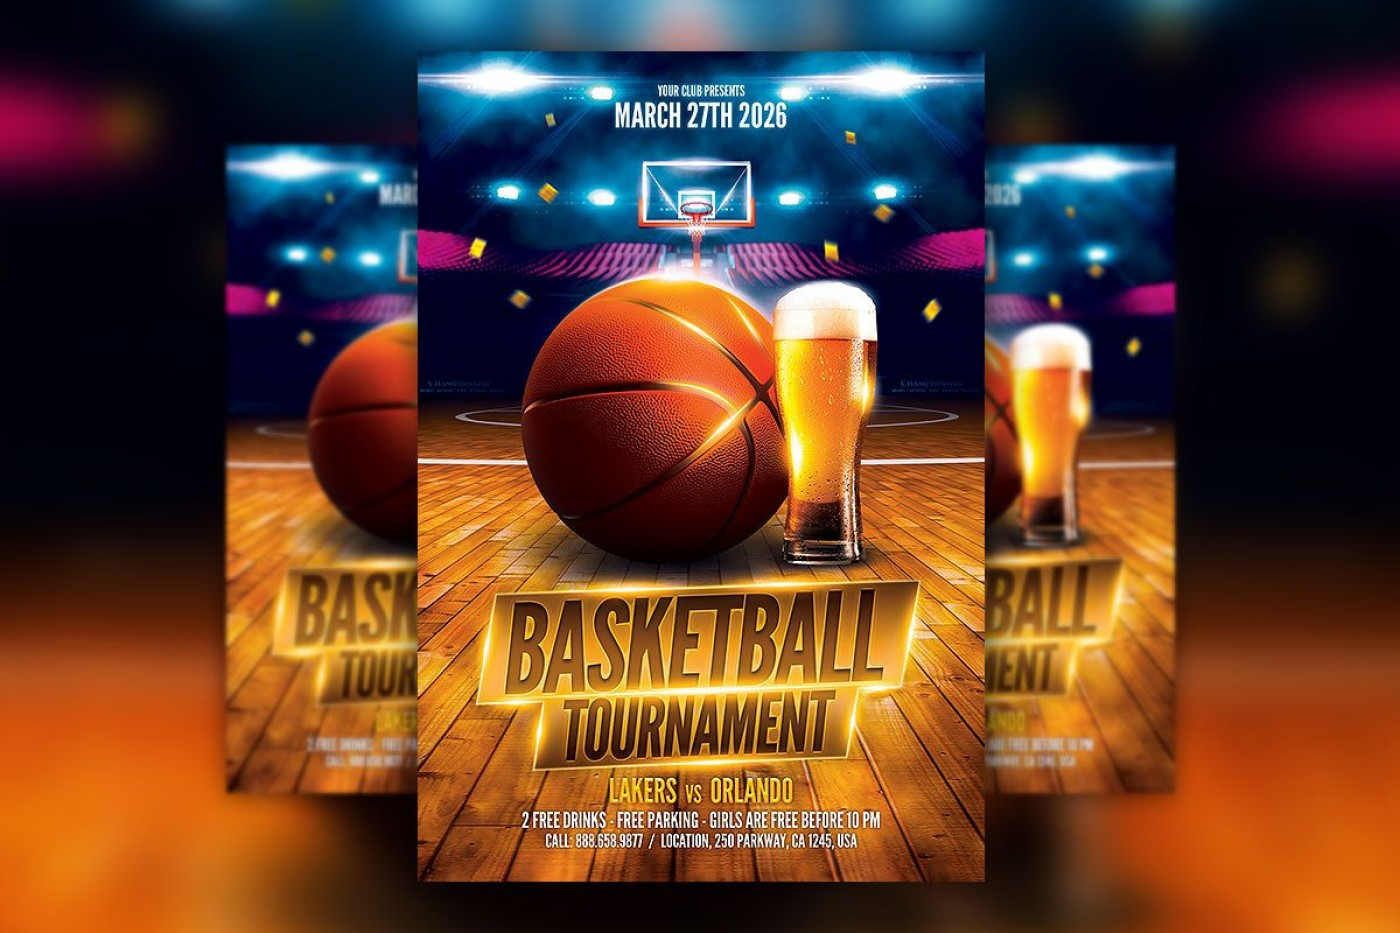 004 Awesome Free Basketball Flyer Template Idea  Game 3 On Tournament Word1400